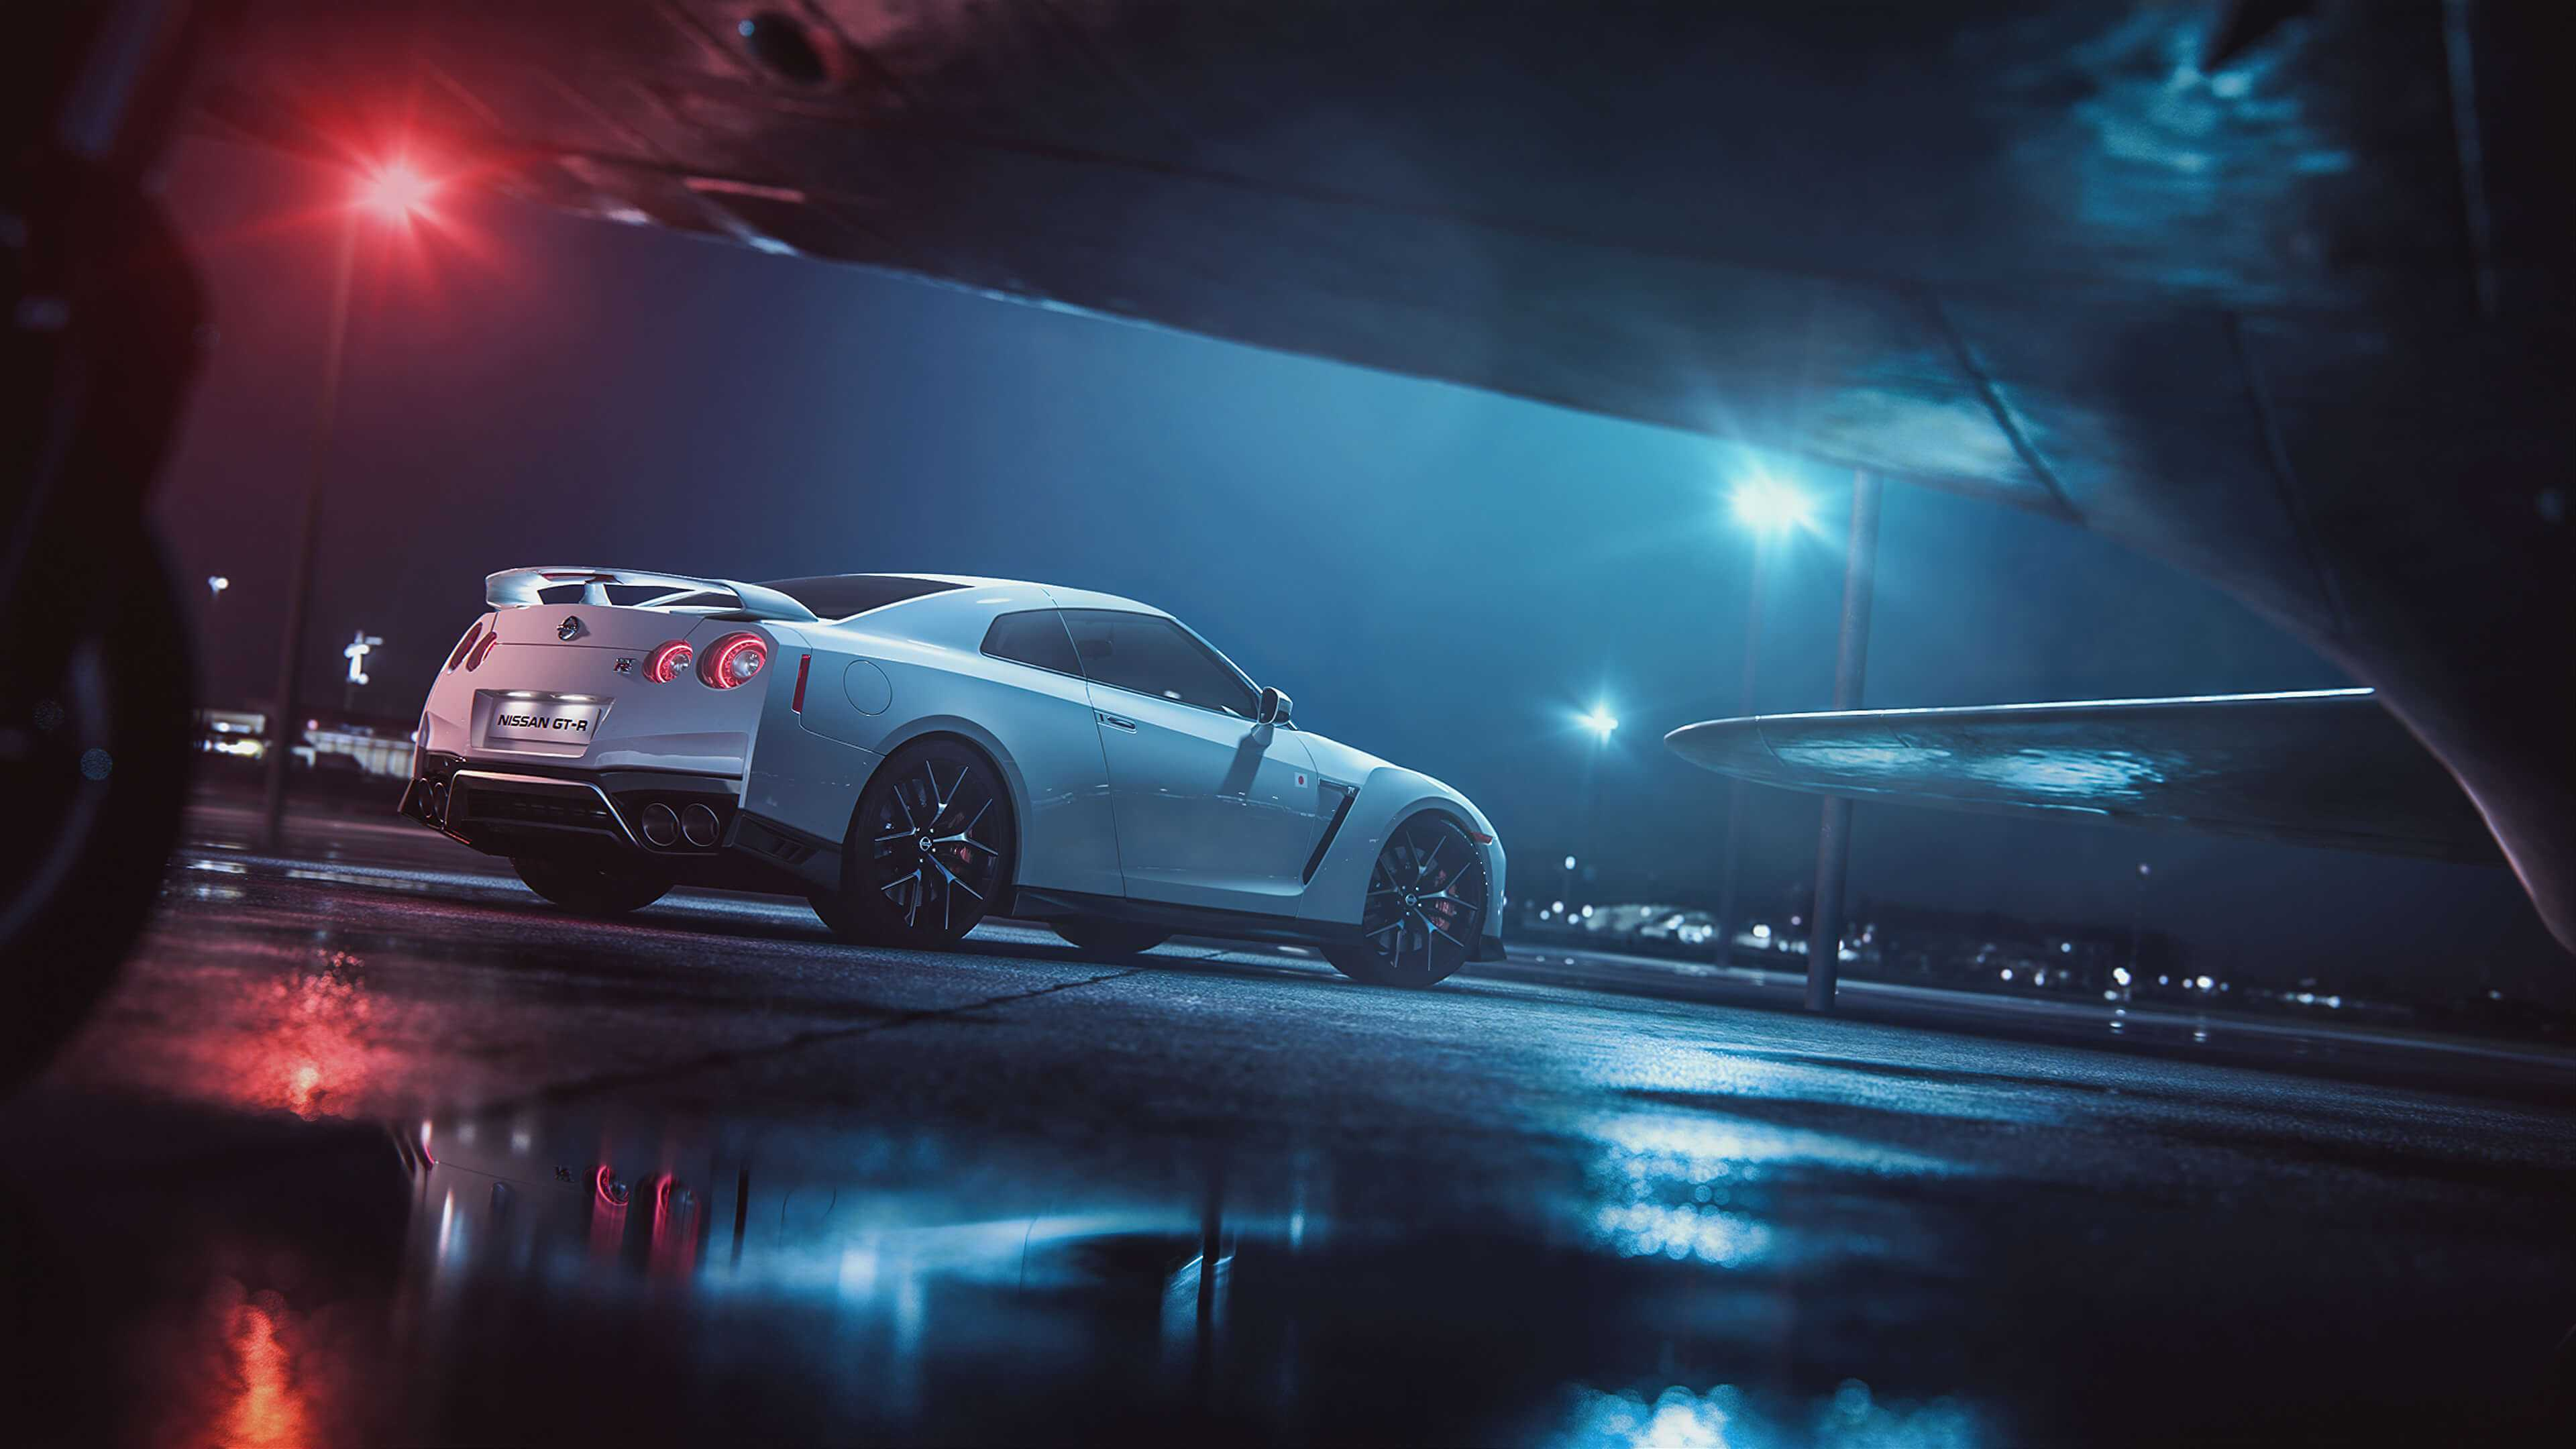 Nissan GTR Background   KoLPaPer   Awesome HD Wallpapers 3840x2160